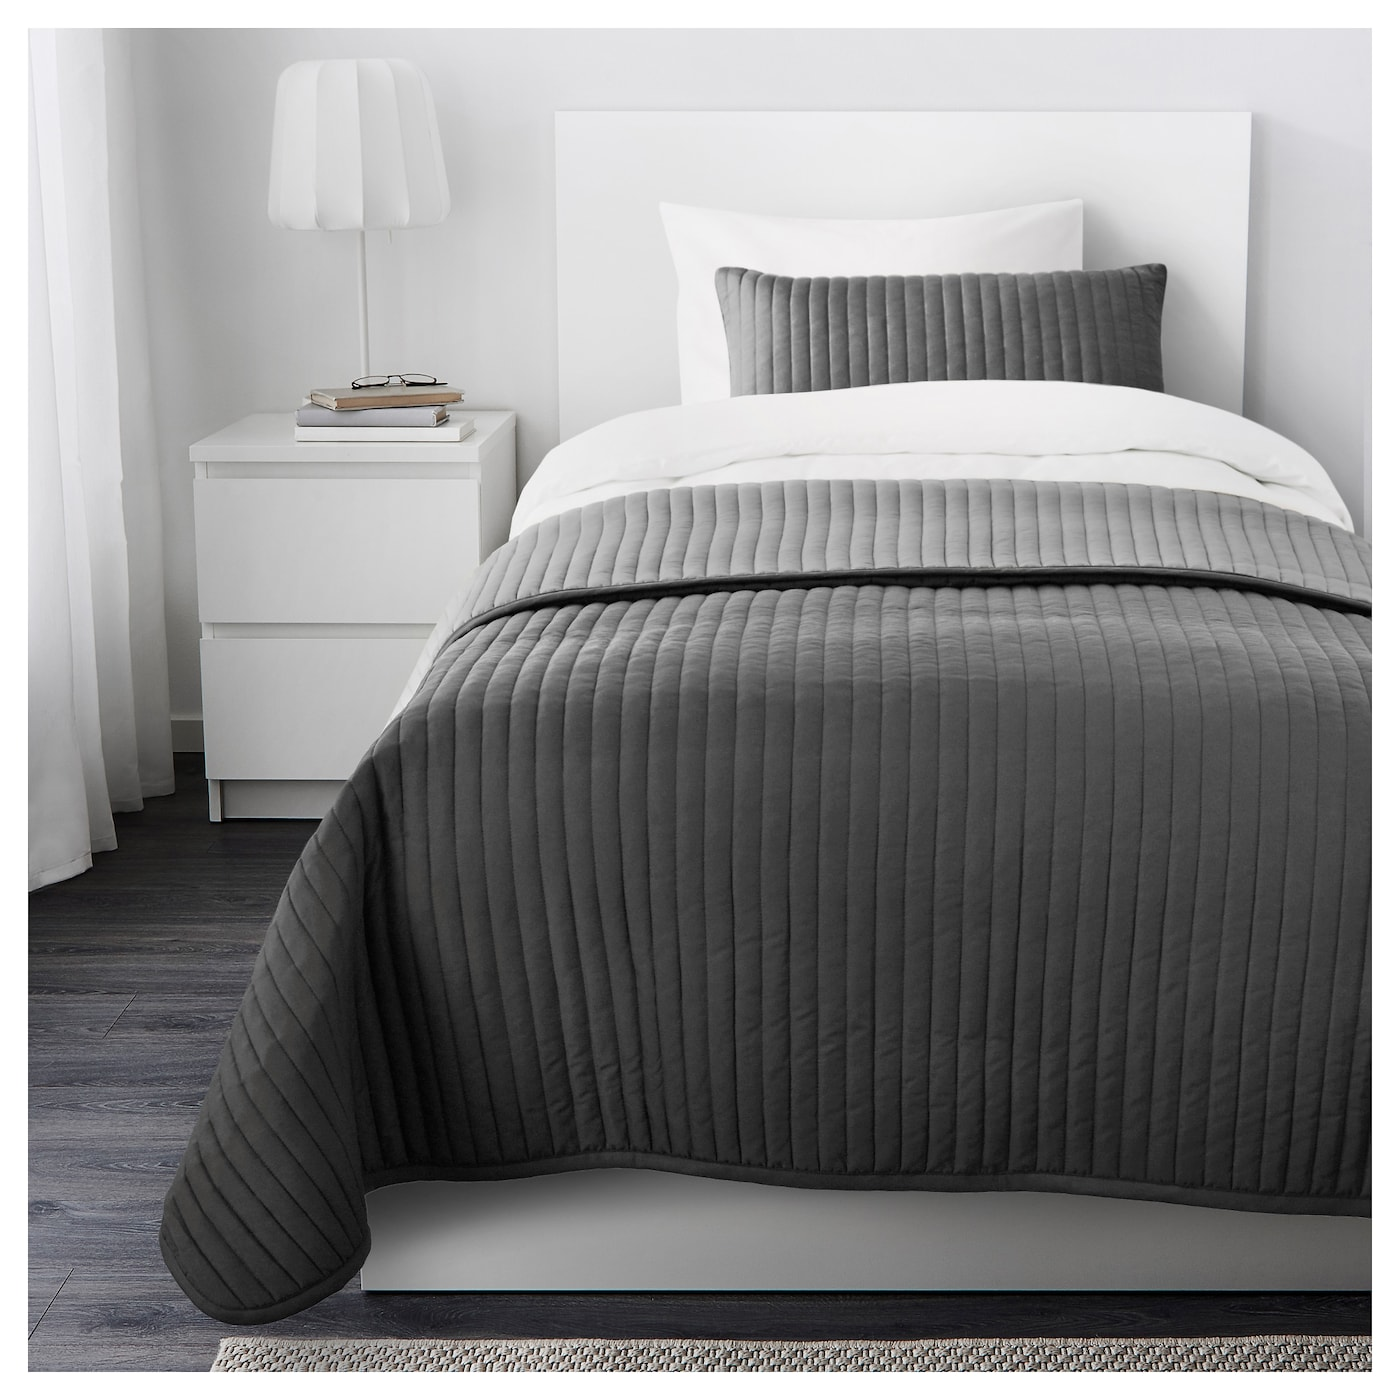 IKEA KARIT bedspread and cushion cover Extra soft since the bedspread and cushion cover are quilted.